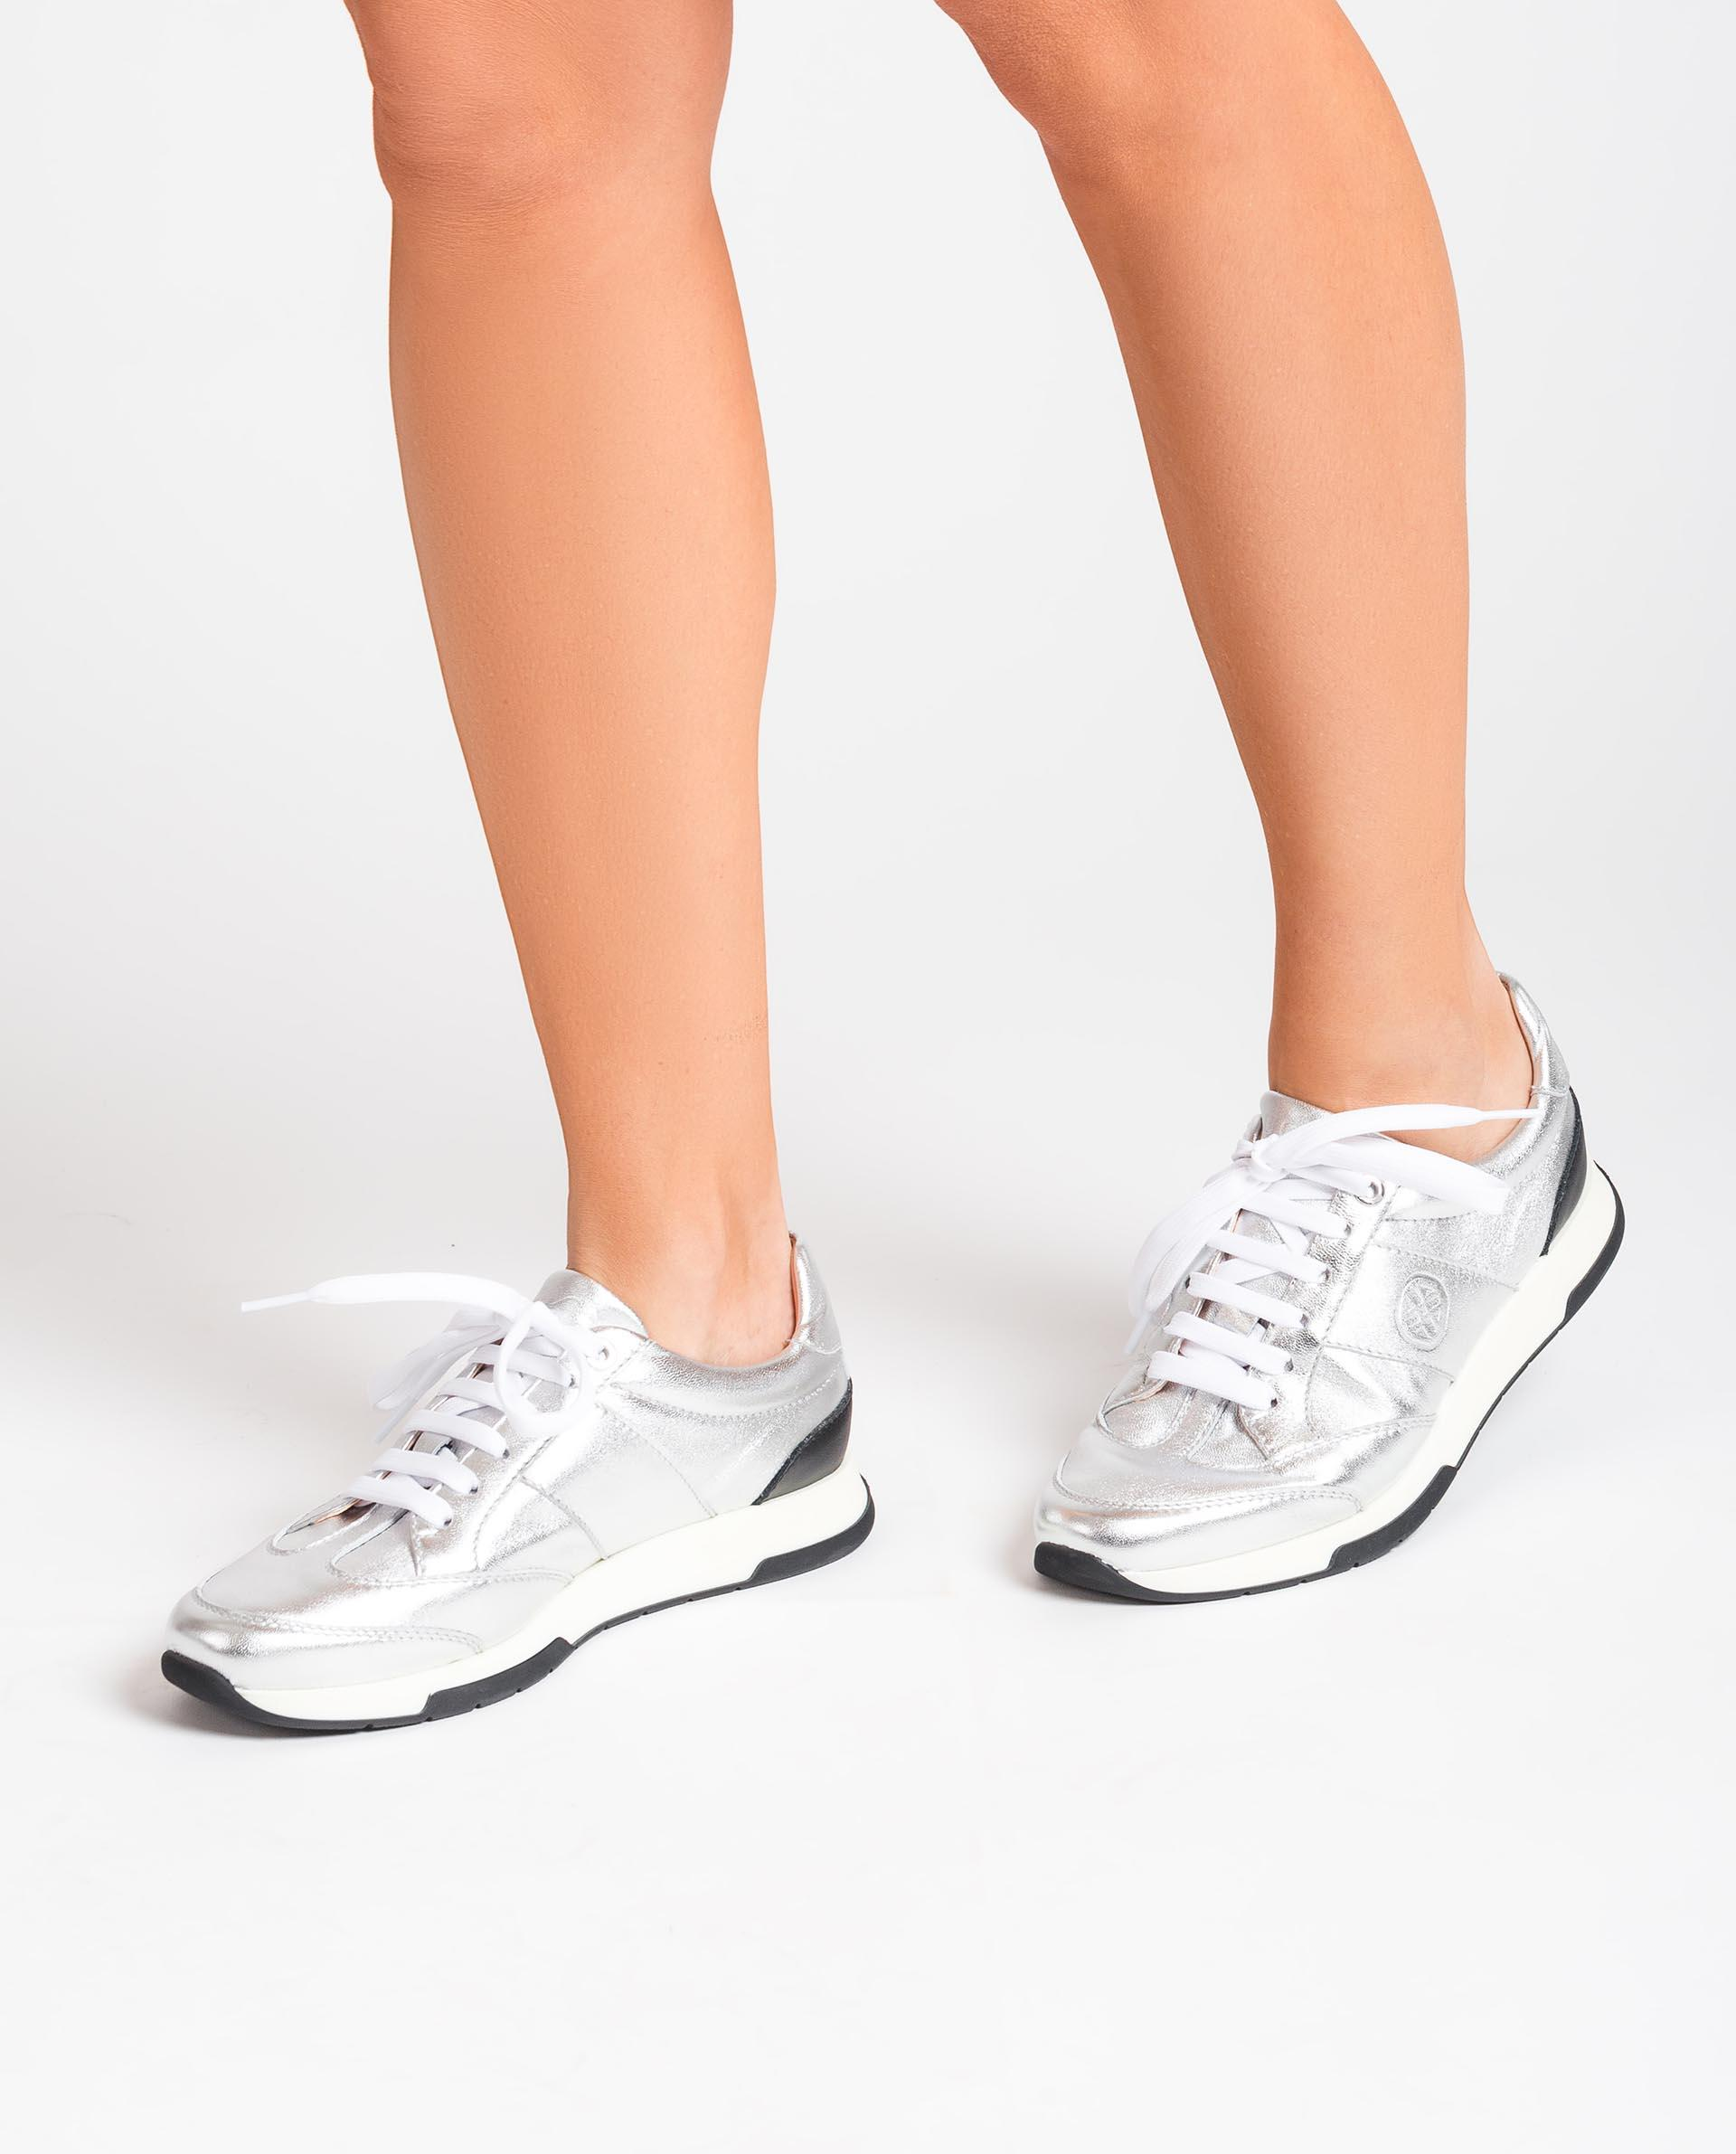 UNISA Shiny effect leather sneakers FALCONI_21_LMT 2